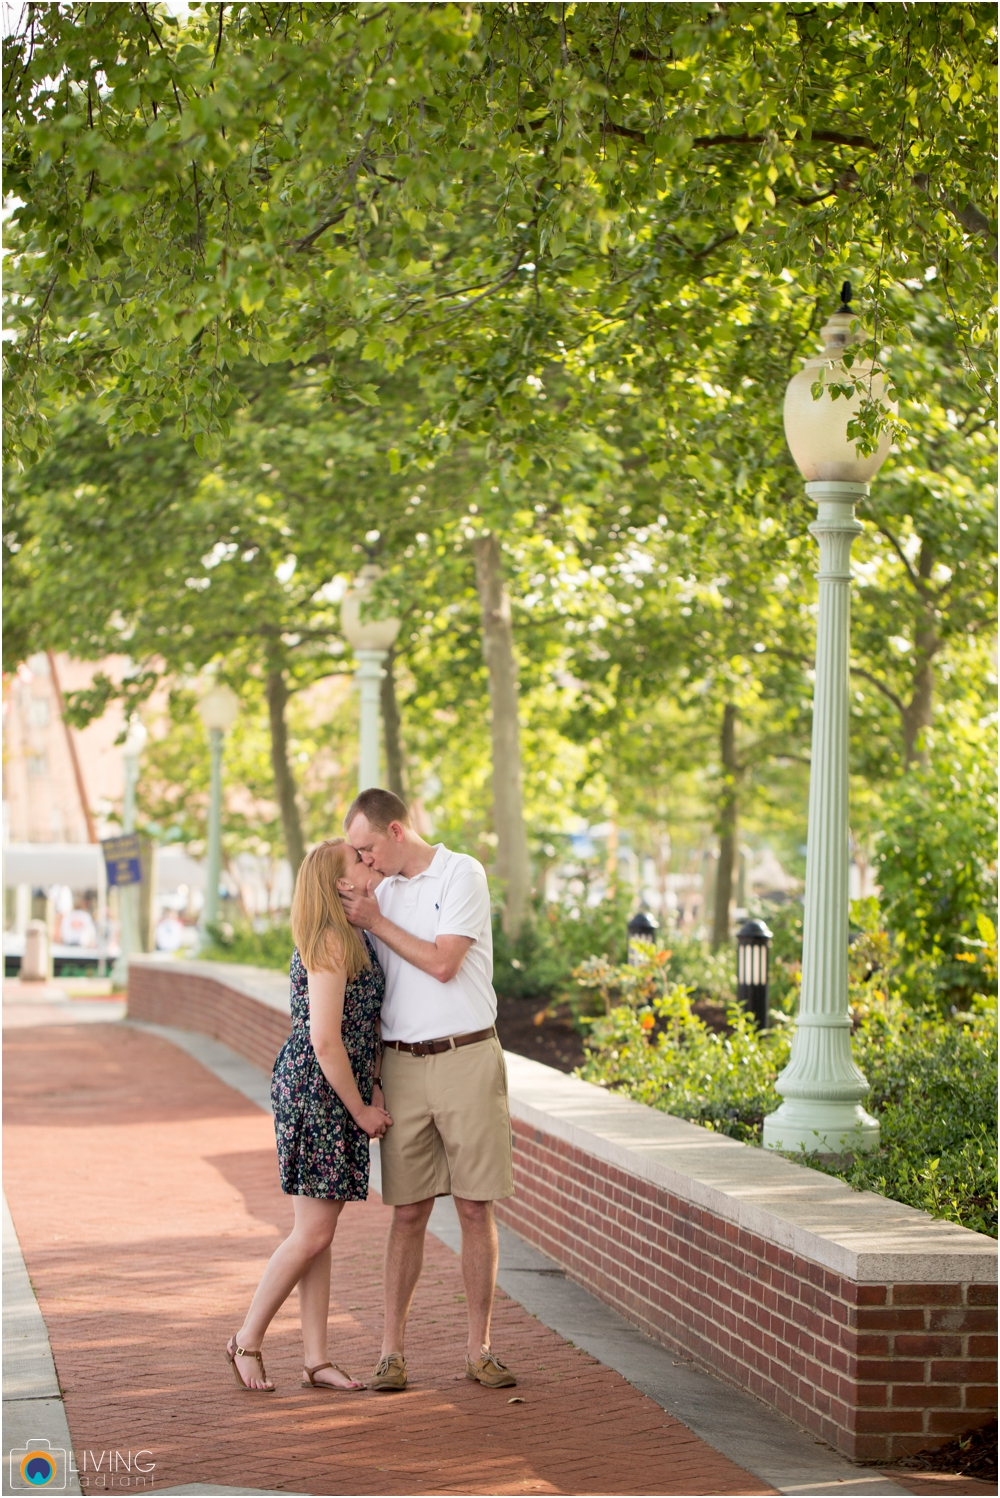 casey-clark-engaged-annapolis-downtown-naval-academy-engagement-session-living-radiant-photography-maggie-patrick-nolan-outdoor-water-boats_0016.jpg